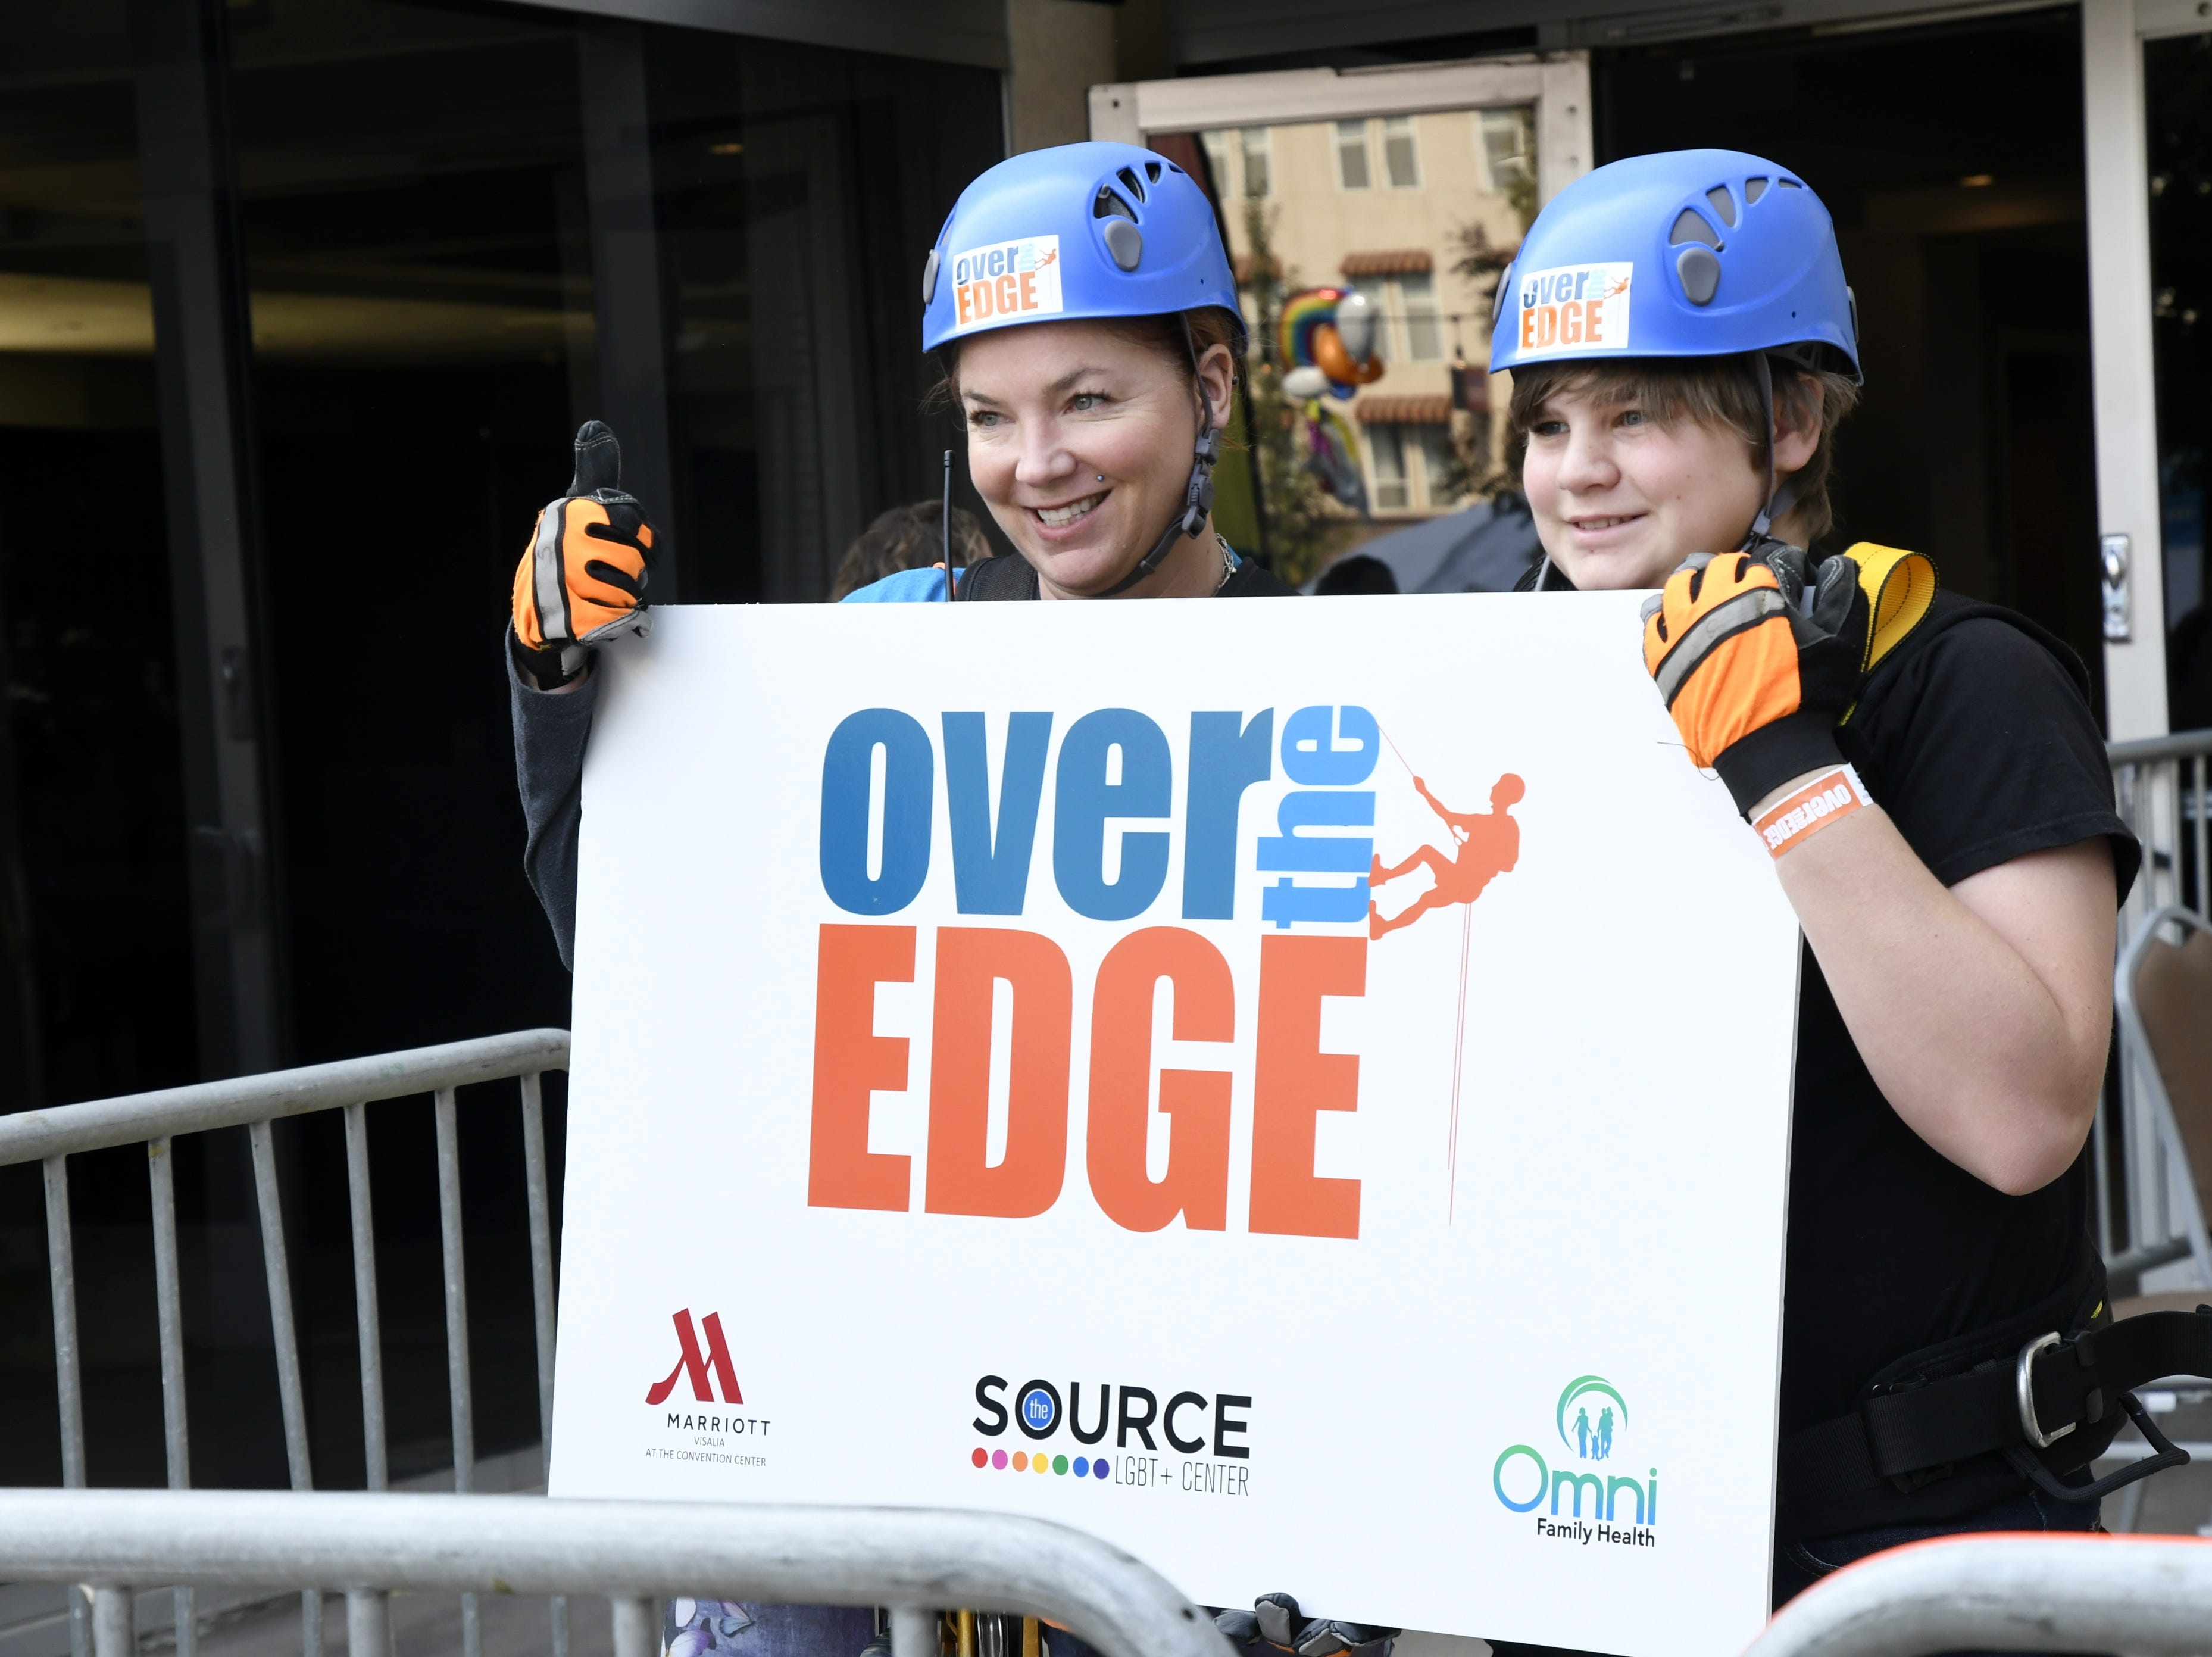 Dana and Cole Galante pose for a photo after rappelling down the side of the Visalia Marriott at the Convention Center in downtown Visalia for the first Over the Edge fundraising event for The Source LGBT+ Center on Saturday, November 10, 2018.